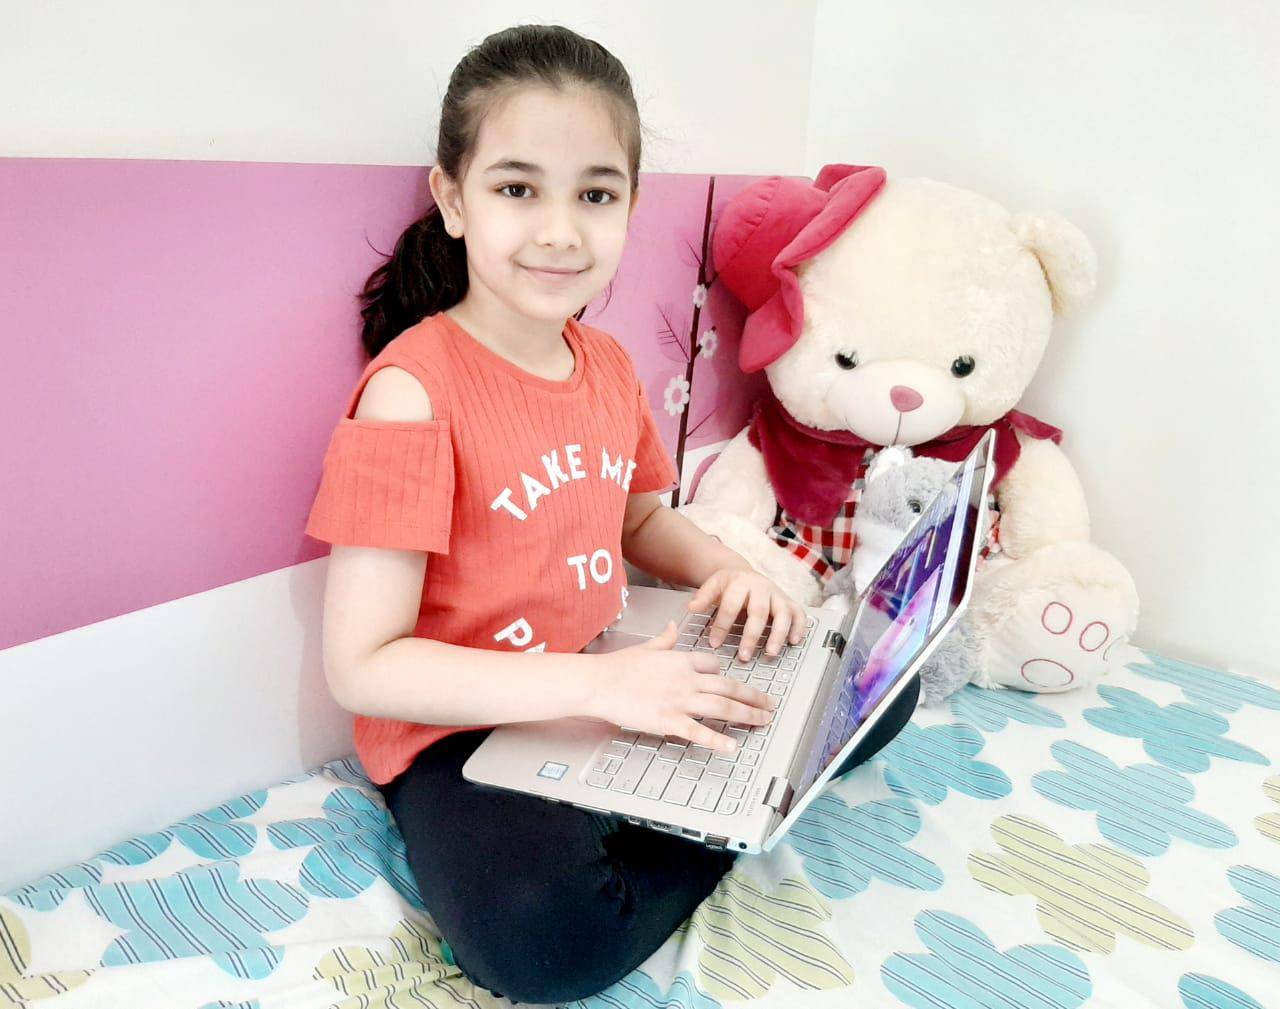 UAE: 7-year-old is youngest to do AI internship from Oxford